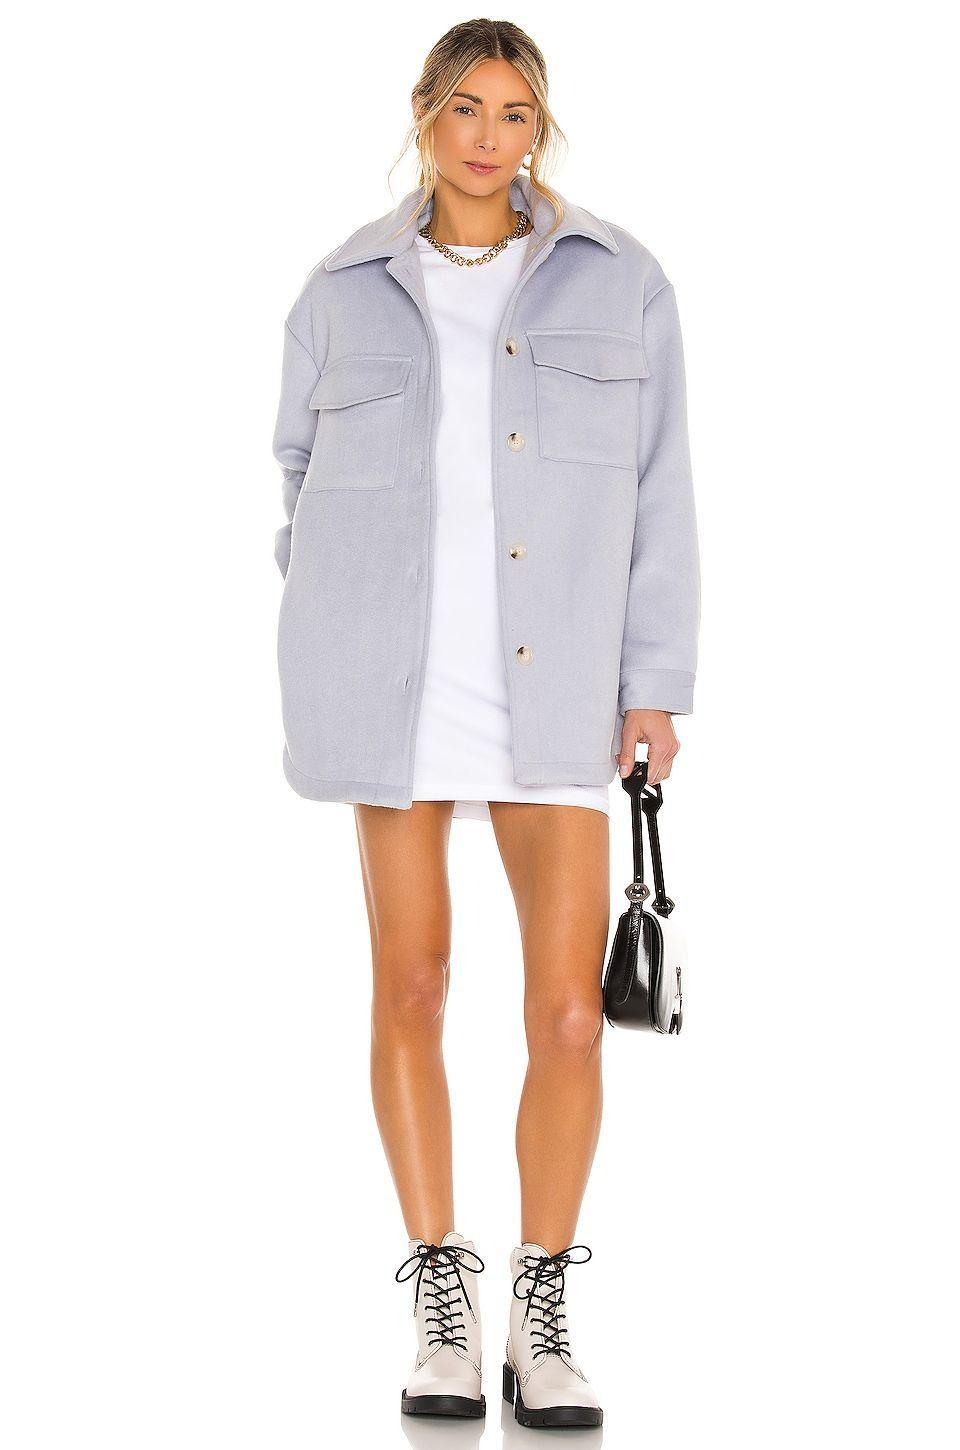 """<p><strong>Line & Dot</strong></p><p>revolve.com</p><p><strong>$184.00</strong></p><p><a href=""""https://go.redirectingat.com?id=74968X1596630&url=https%3A%2F%2Fwww.revolve.com%2Fdp%2FLEAX-WO64%2F&sref=https%3A%2F%2Fwww.cosmopolitan.com%2Fstyle-beauty%2Ffashion%2Fg36232237%2Fbest-shackets%2F"""" rel=""""nofollow noopener"""" target=""""_blank"""" data-ylk=""""slk:Shop Now"""" class=""""link rapid-noclick-resp"""">Shop Now</a></p><p>Did I just screenshot this look to recreate for date night? Yes.</p>"""